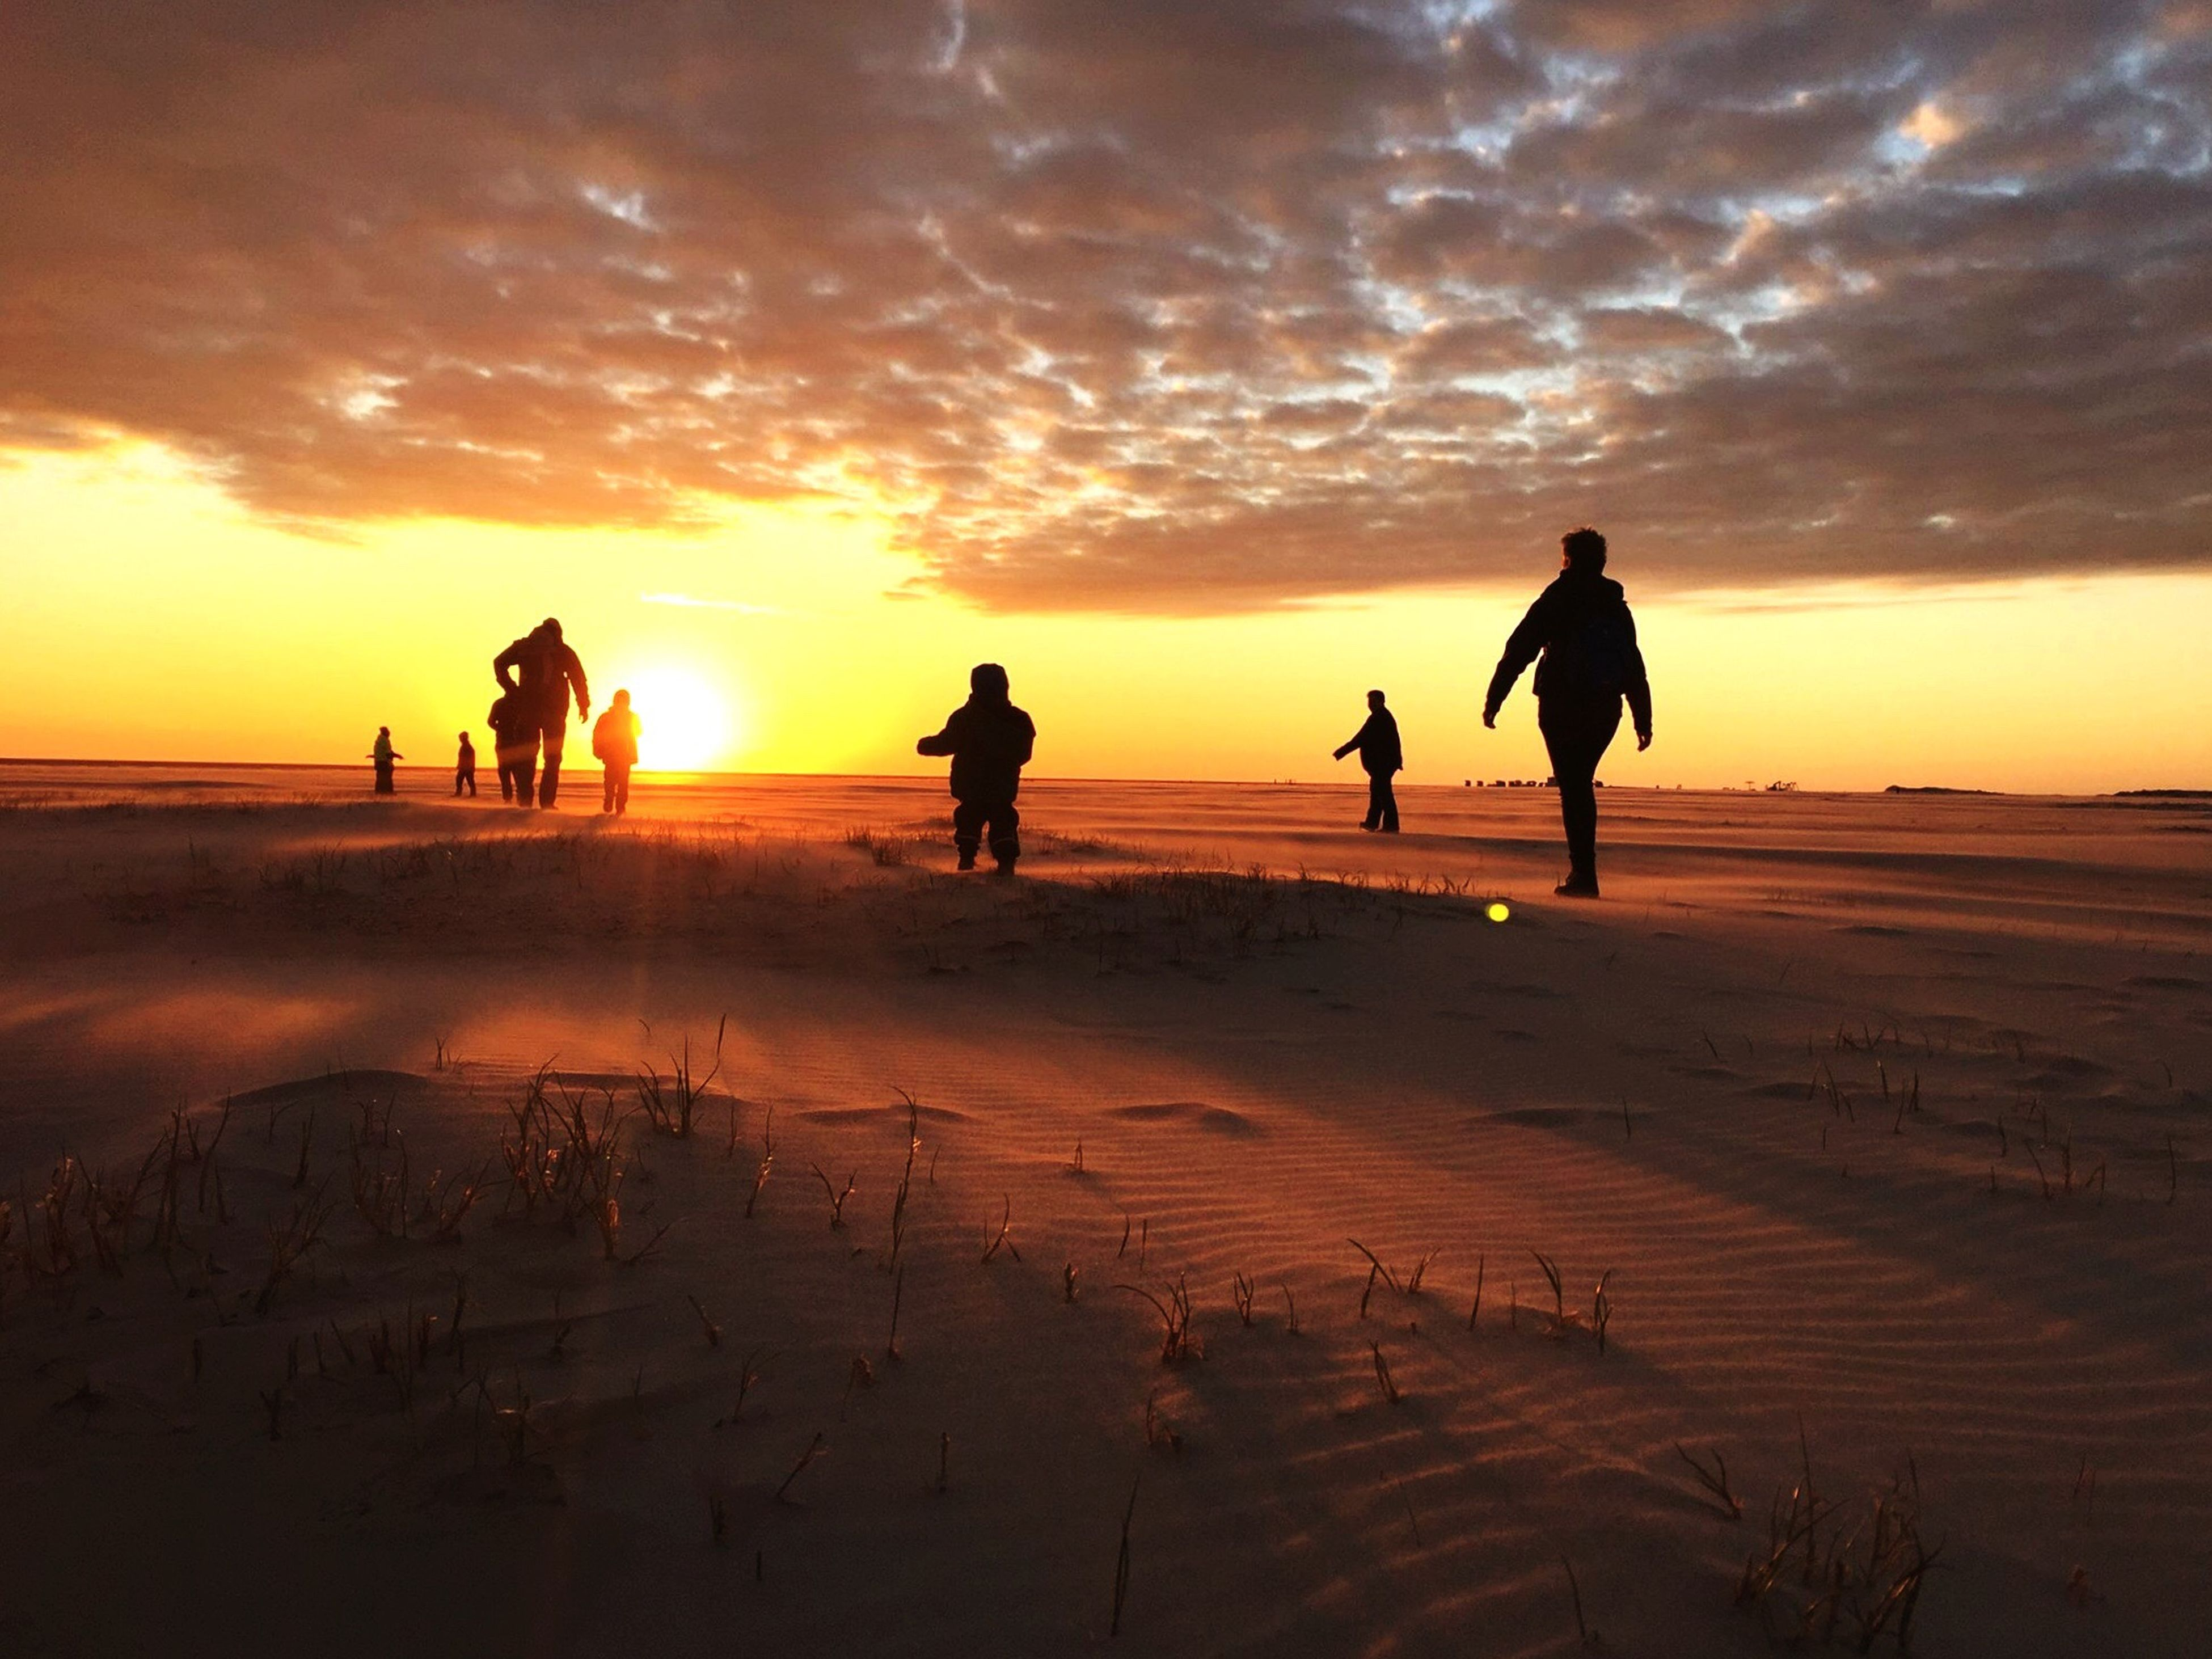 sunset, beach, silhouette, sky, lifestyles, men, leisure activity, orange color, sea, full length, cloud - sky, sand, shore, walking, togetherness, vacations, standing, person